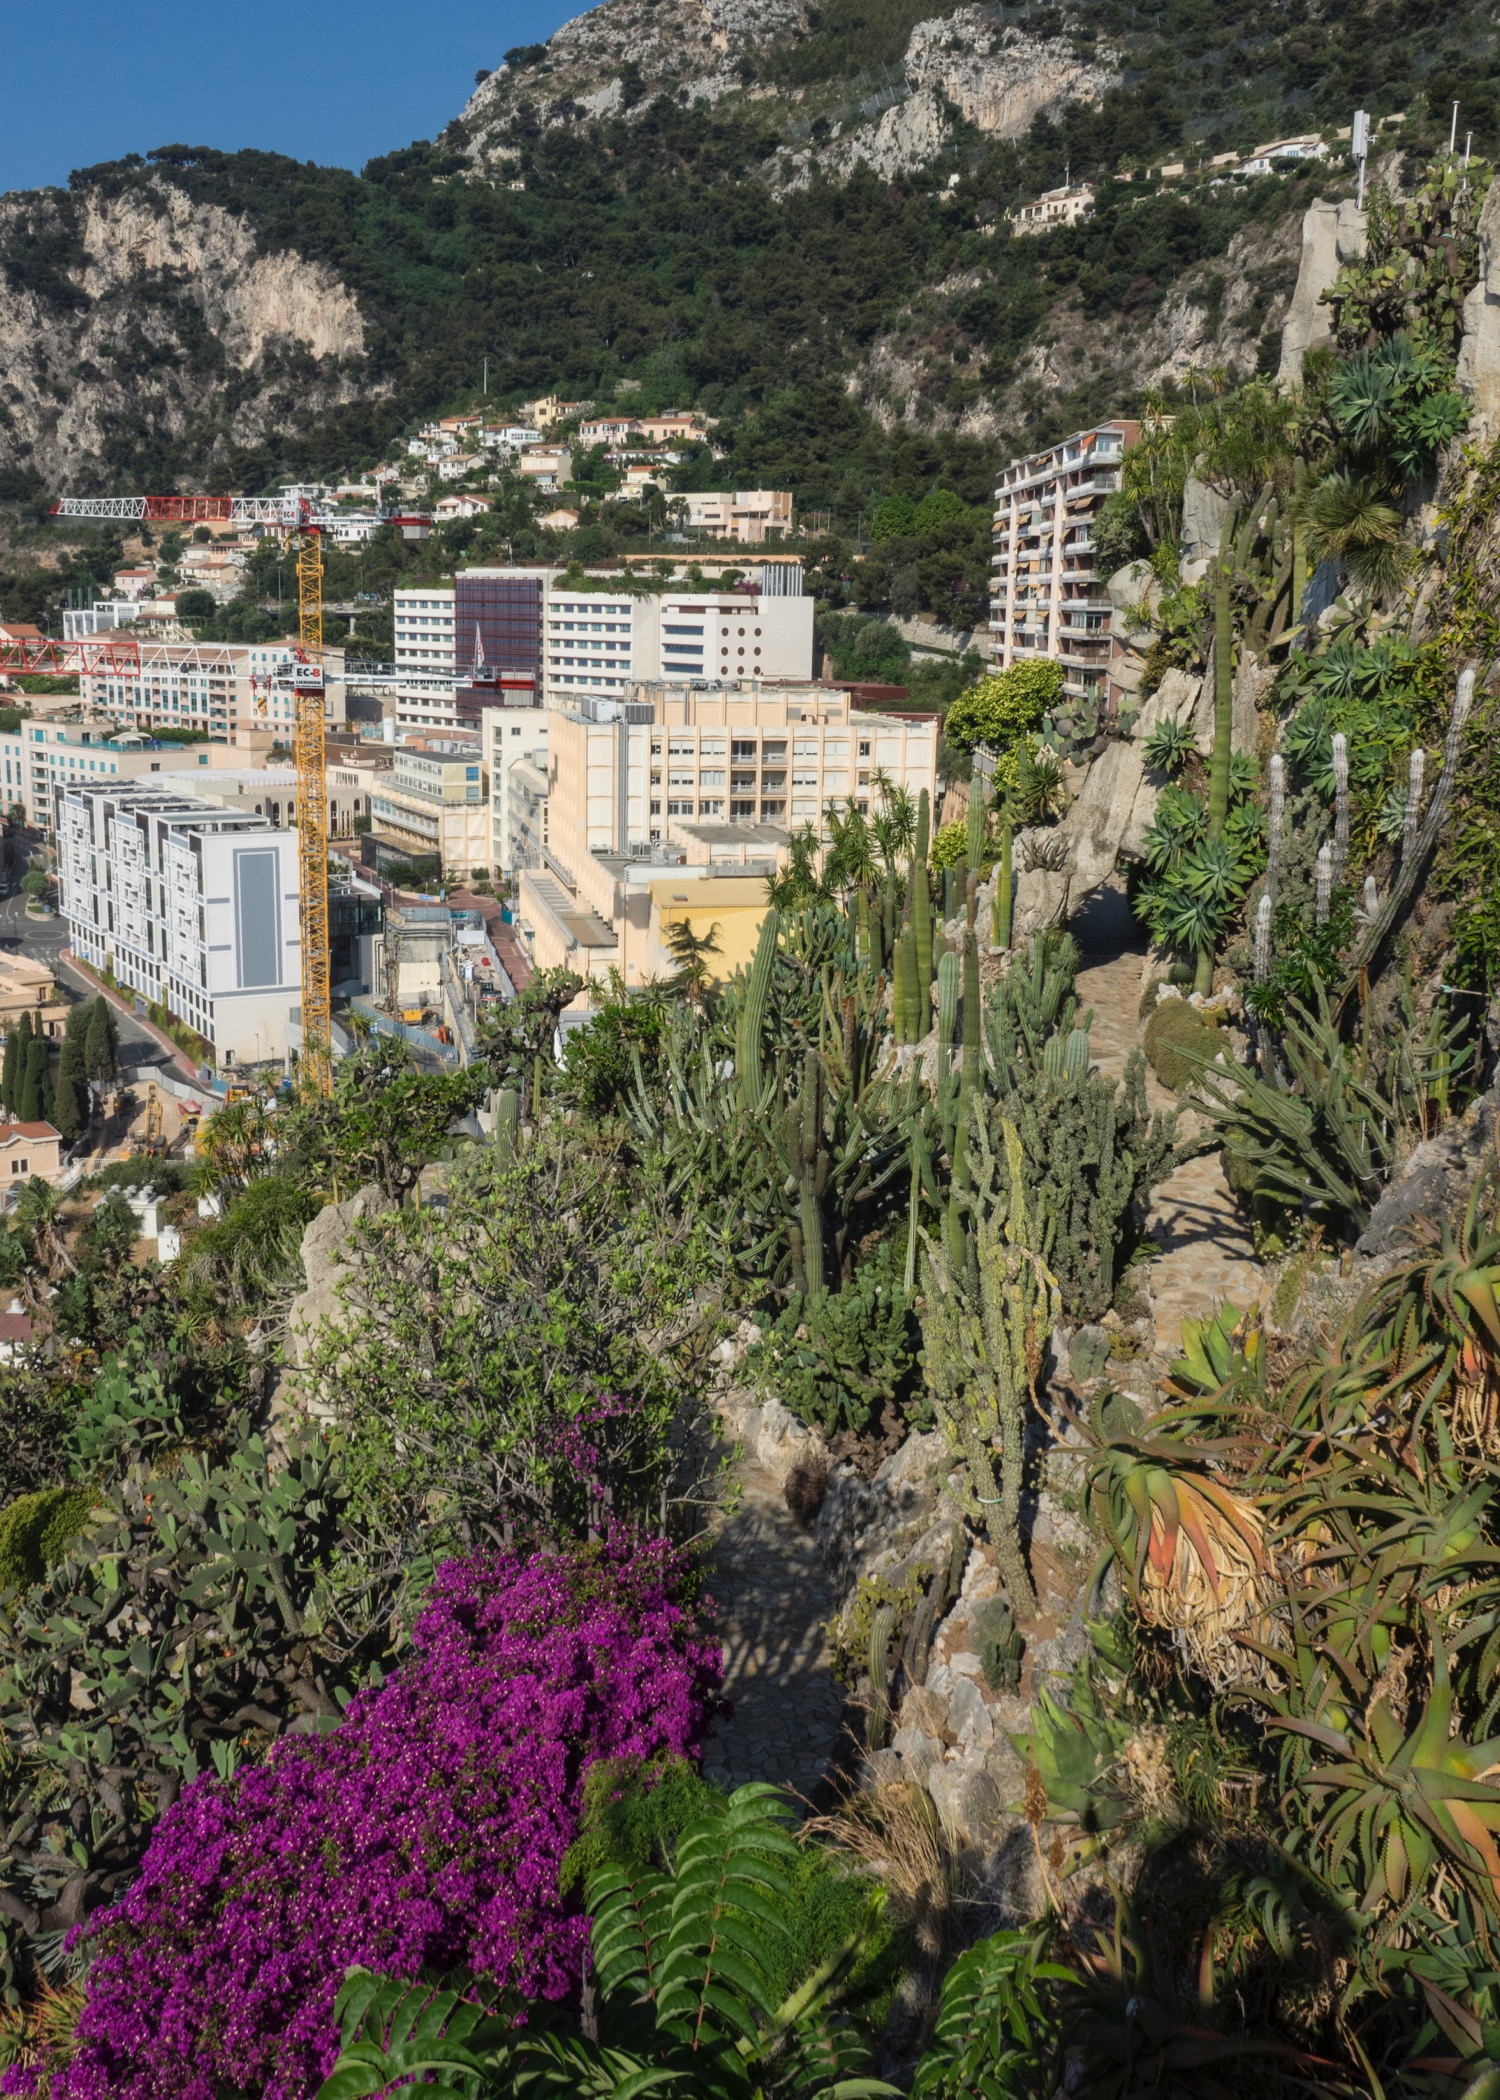 Most of the gardens are built into the steep cliff face, with amazing view out over the city and the ocean